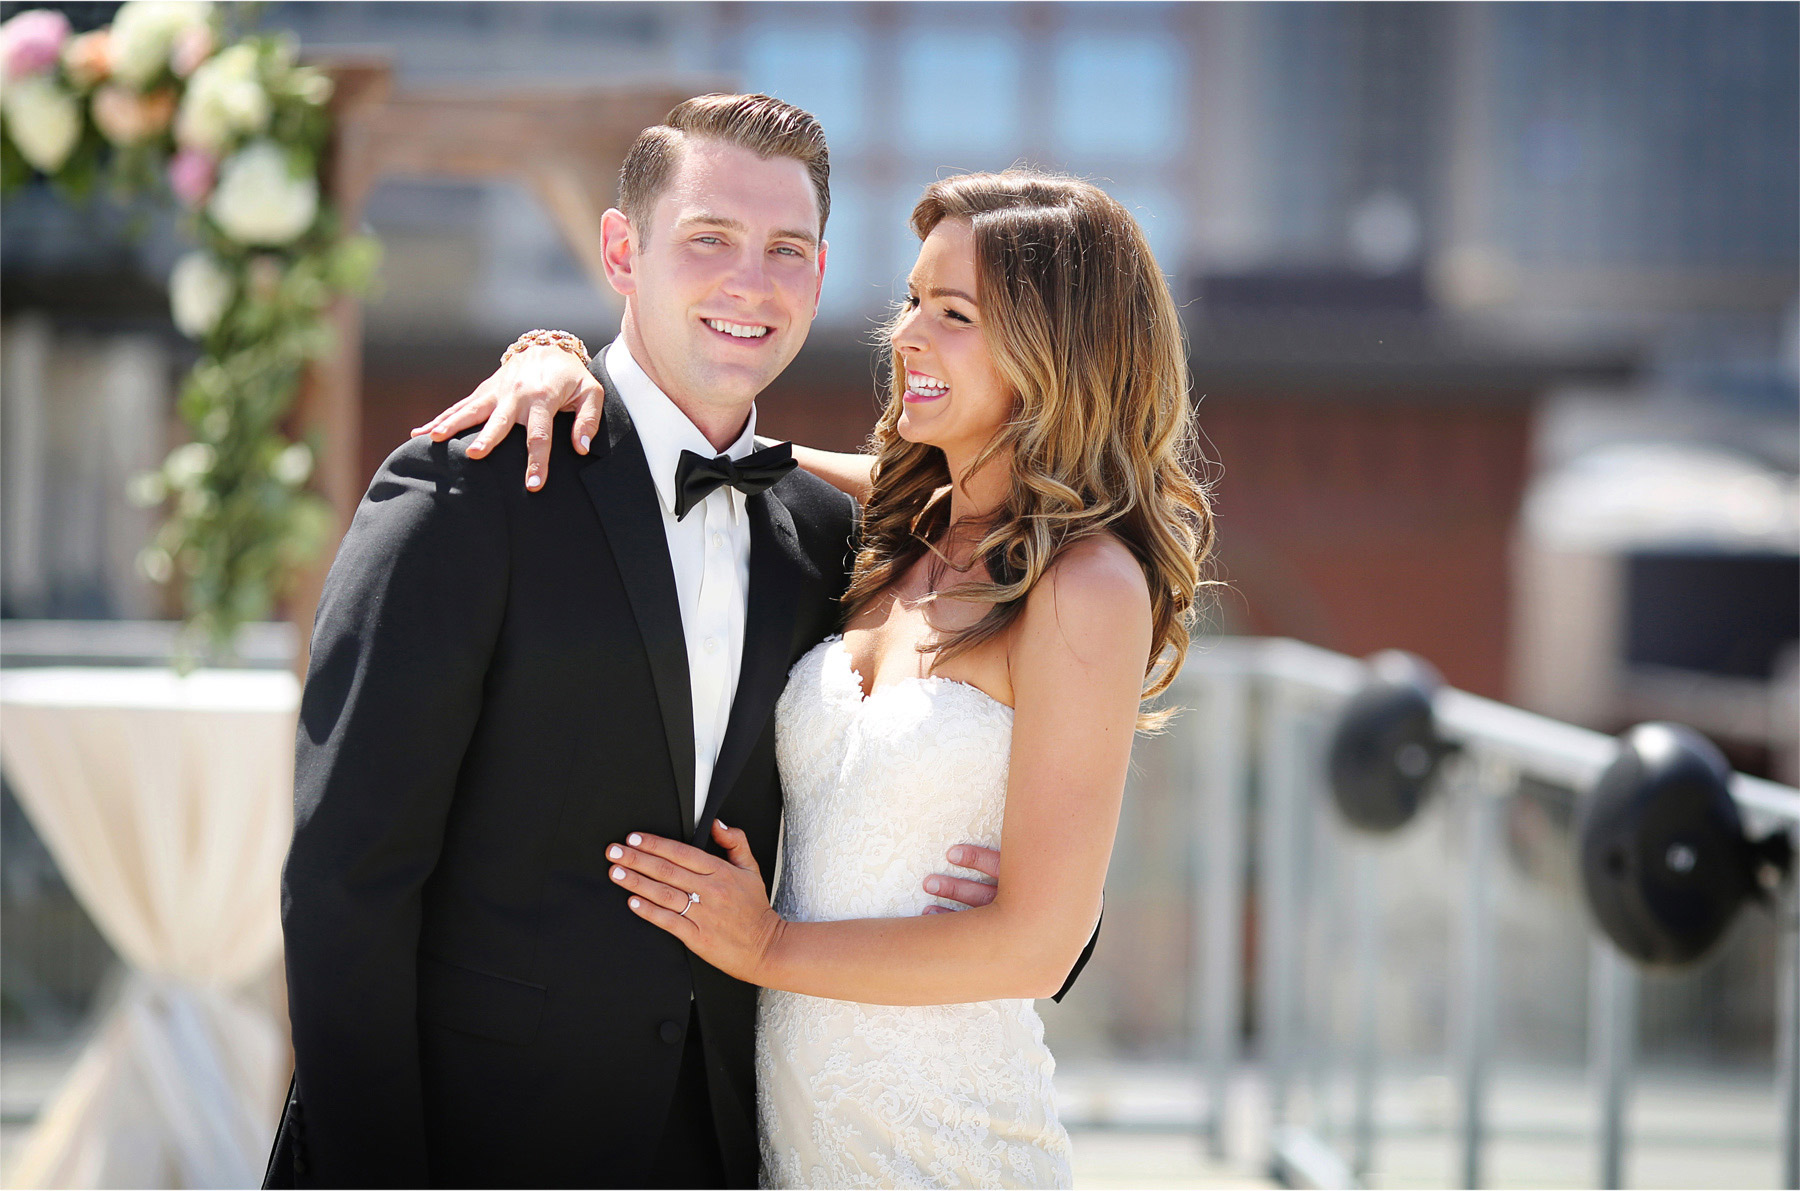 08-Saint-Paul-Minnesota-Wedding-Photographer-by-Andrew-Vick-Photography-Summer-Abulae-First-Meeting-Bride-Groom-Embrace-Molly-and-Dan.jpg